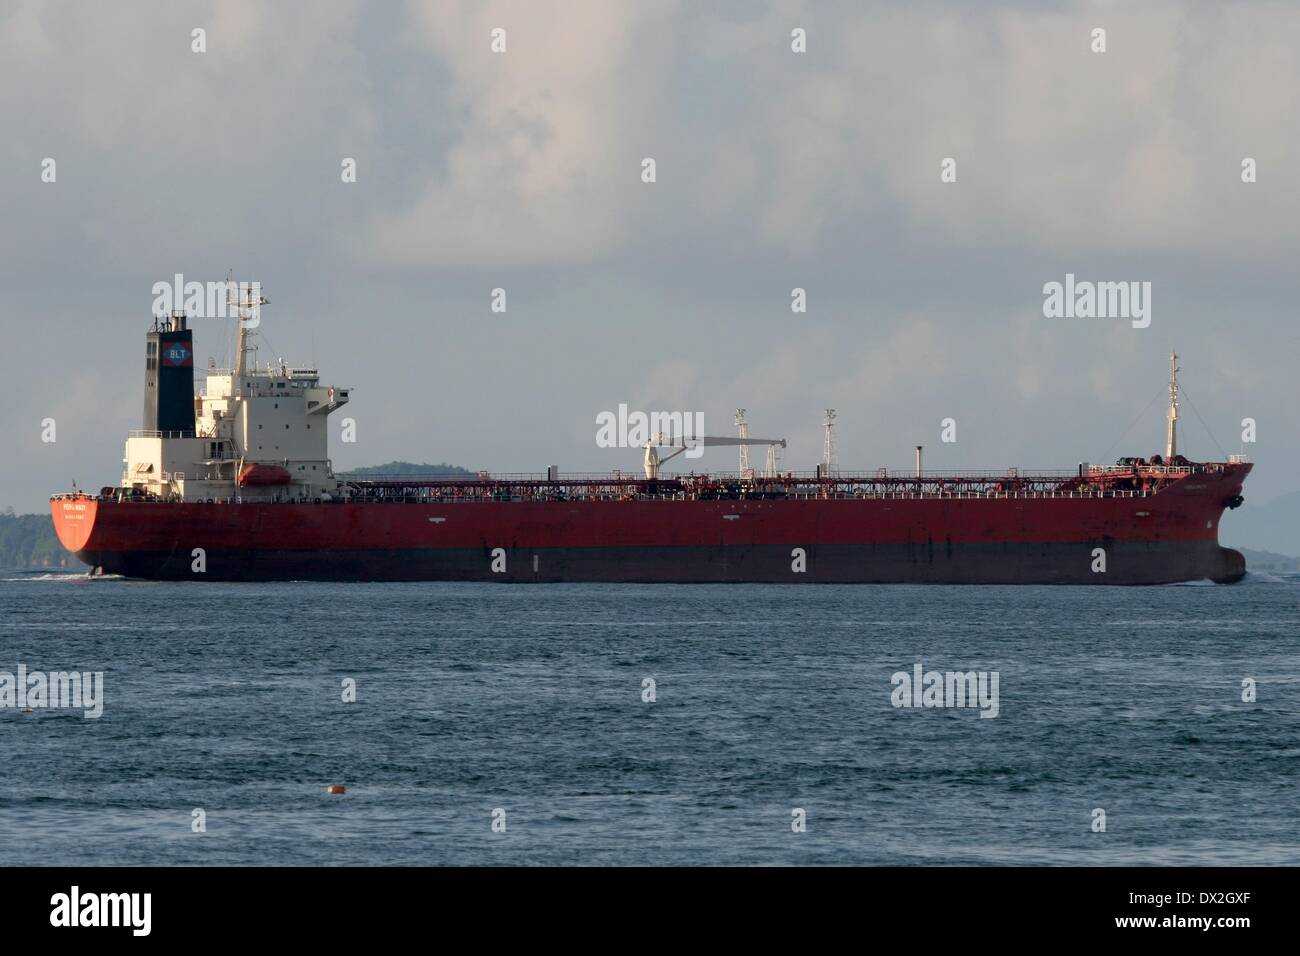 The oil tanker 'Morning Glory', formerly known as 'Pergiwati